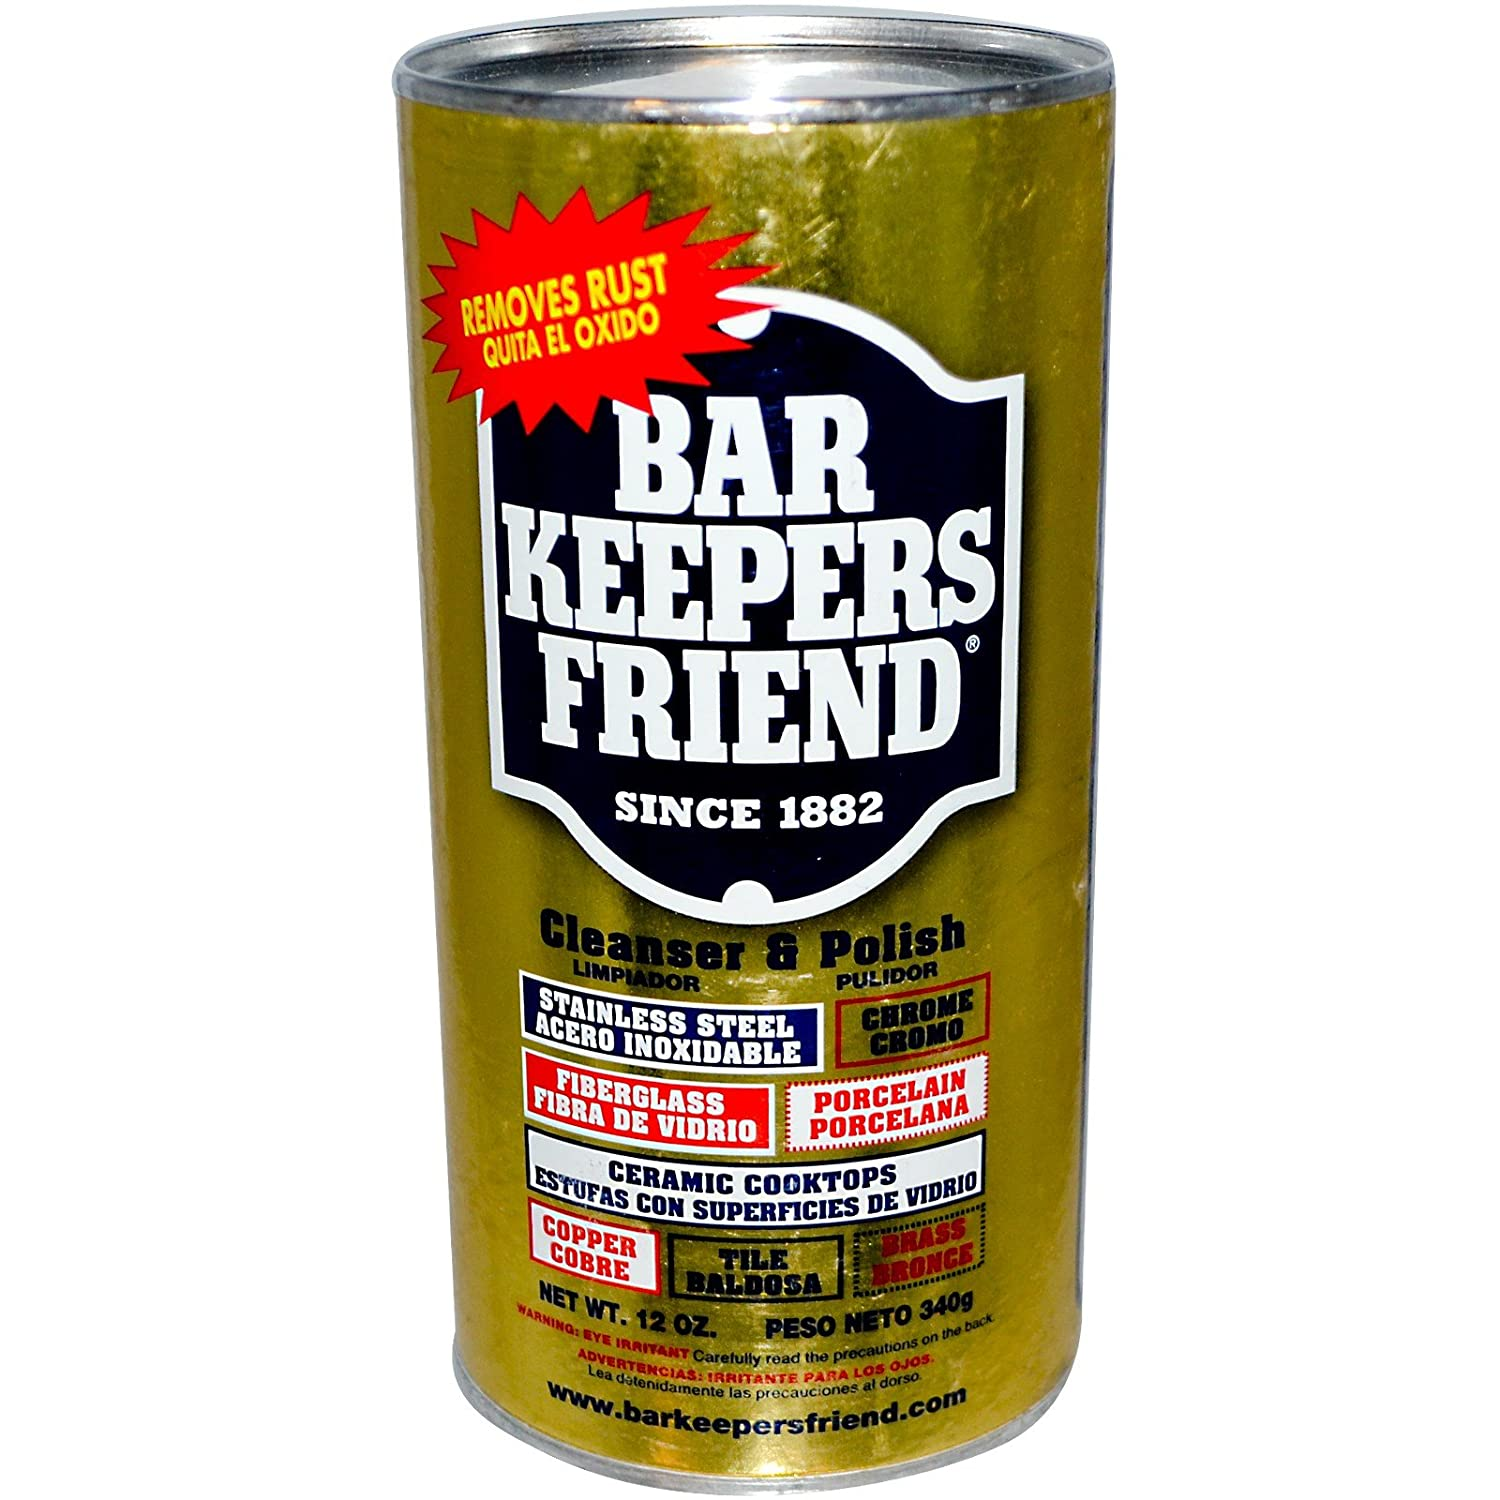 Amazon.com: Bar Keepers Friend, Cleanser & Polish, 12 oz (340 g) - 3PC: Home & Kitchen